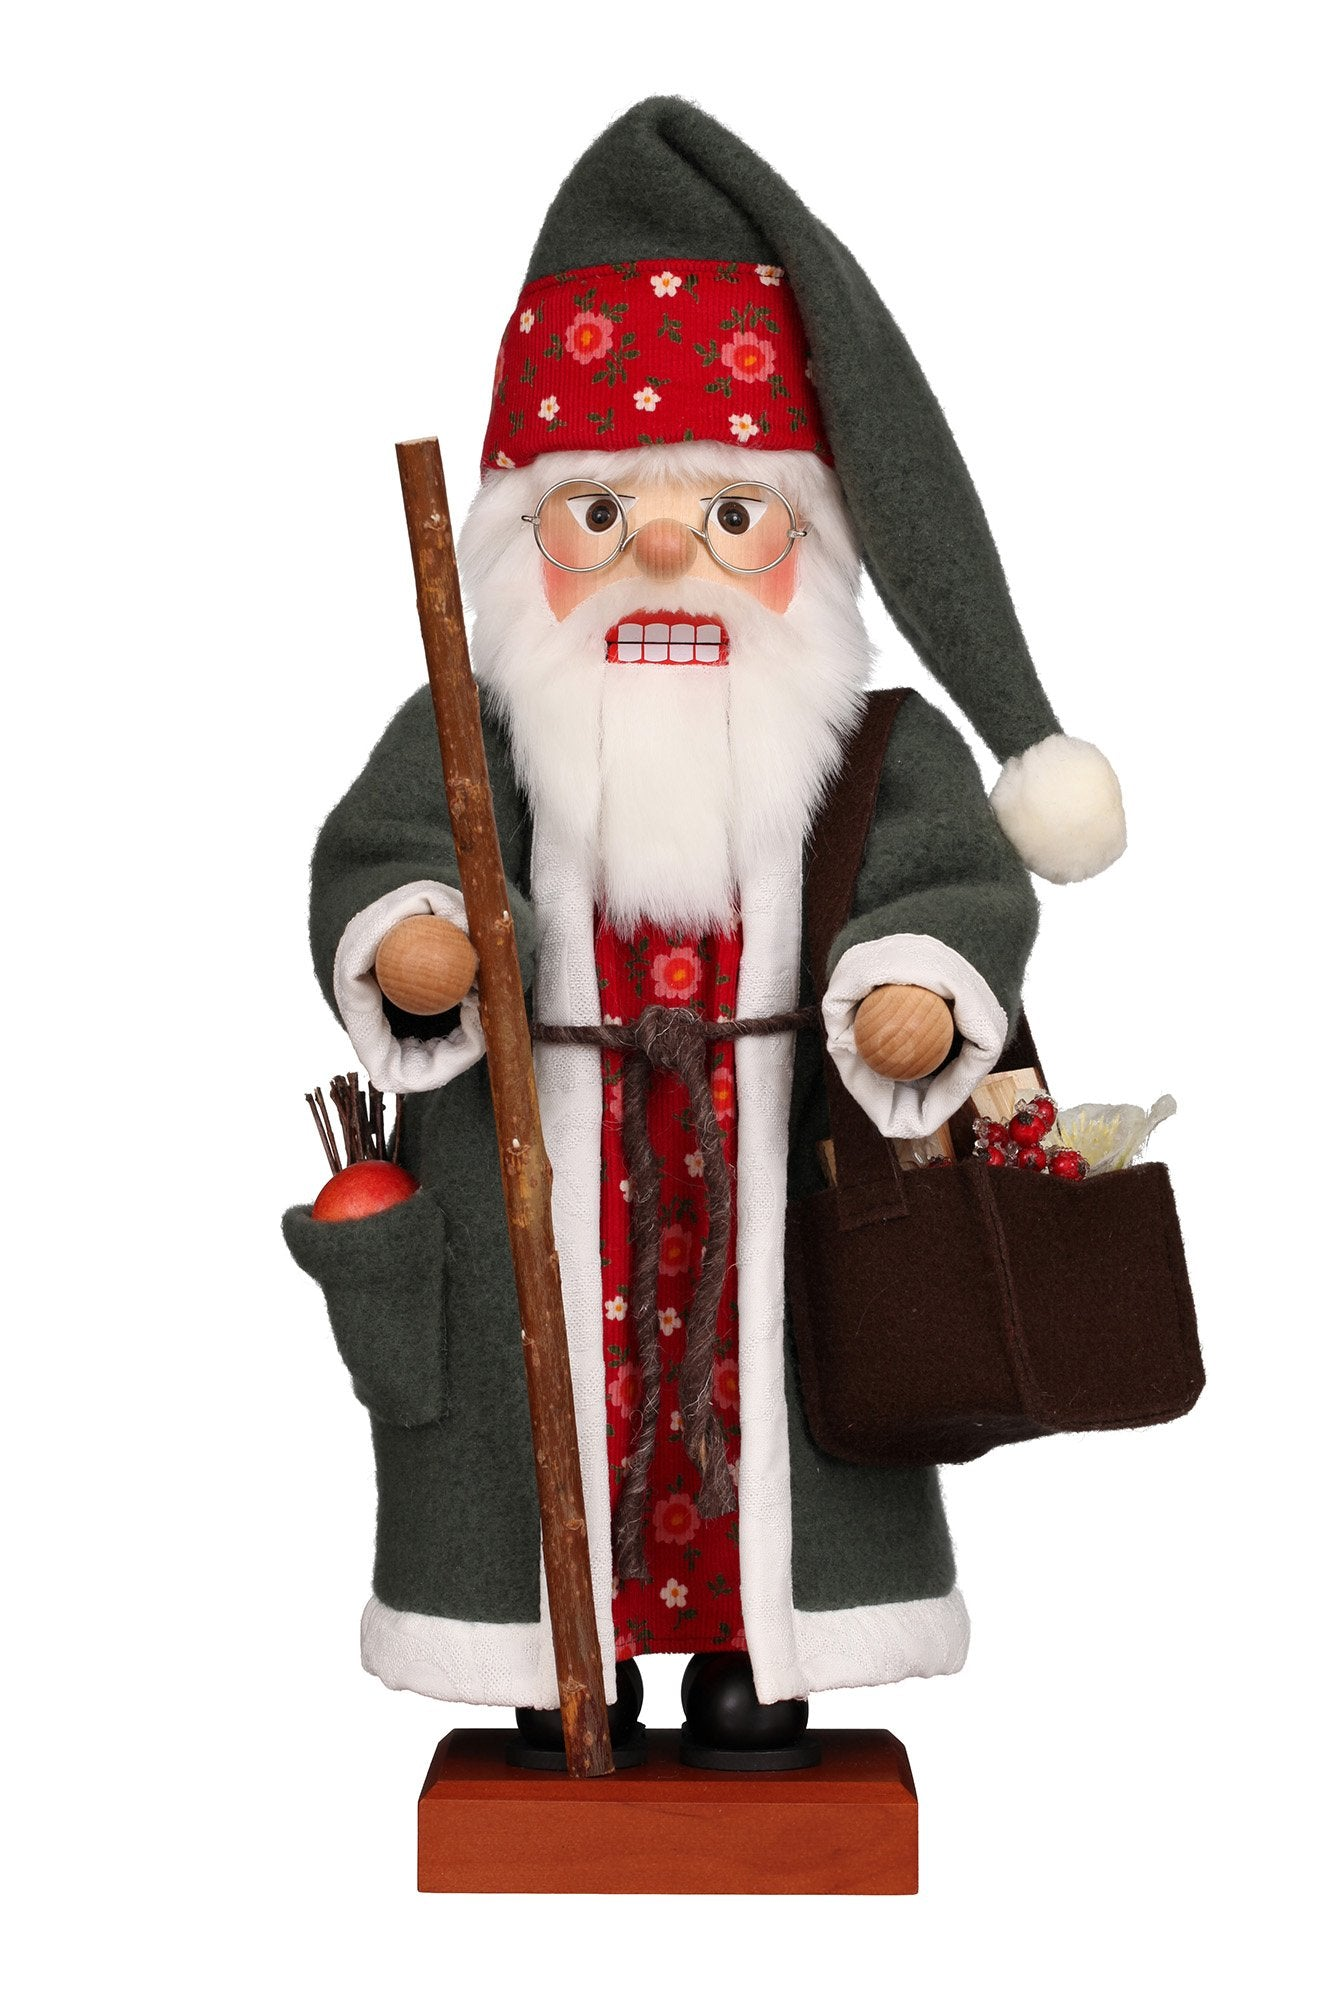 Nutcracker (Premium Collector's Edition) - Folk Santa